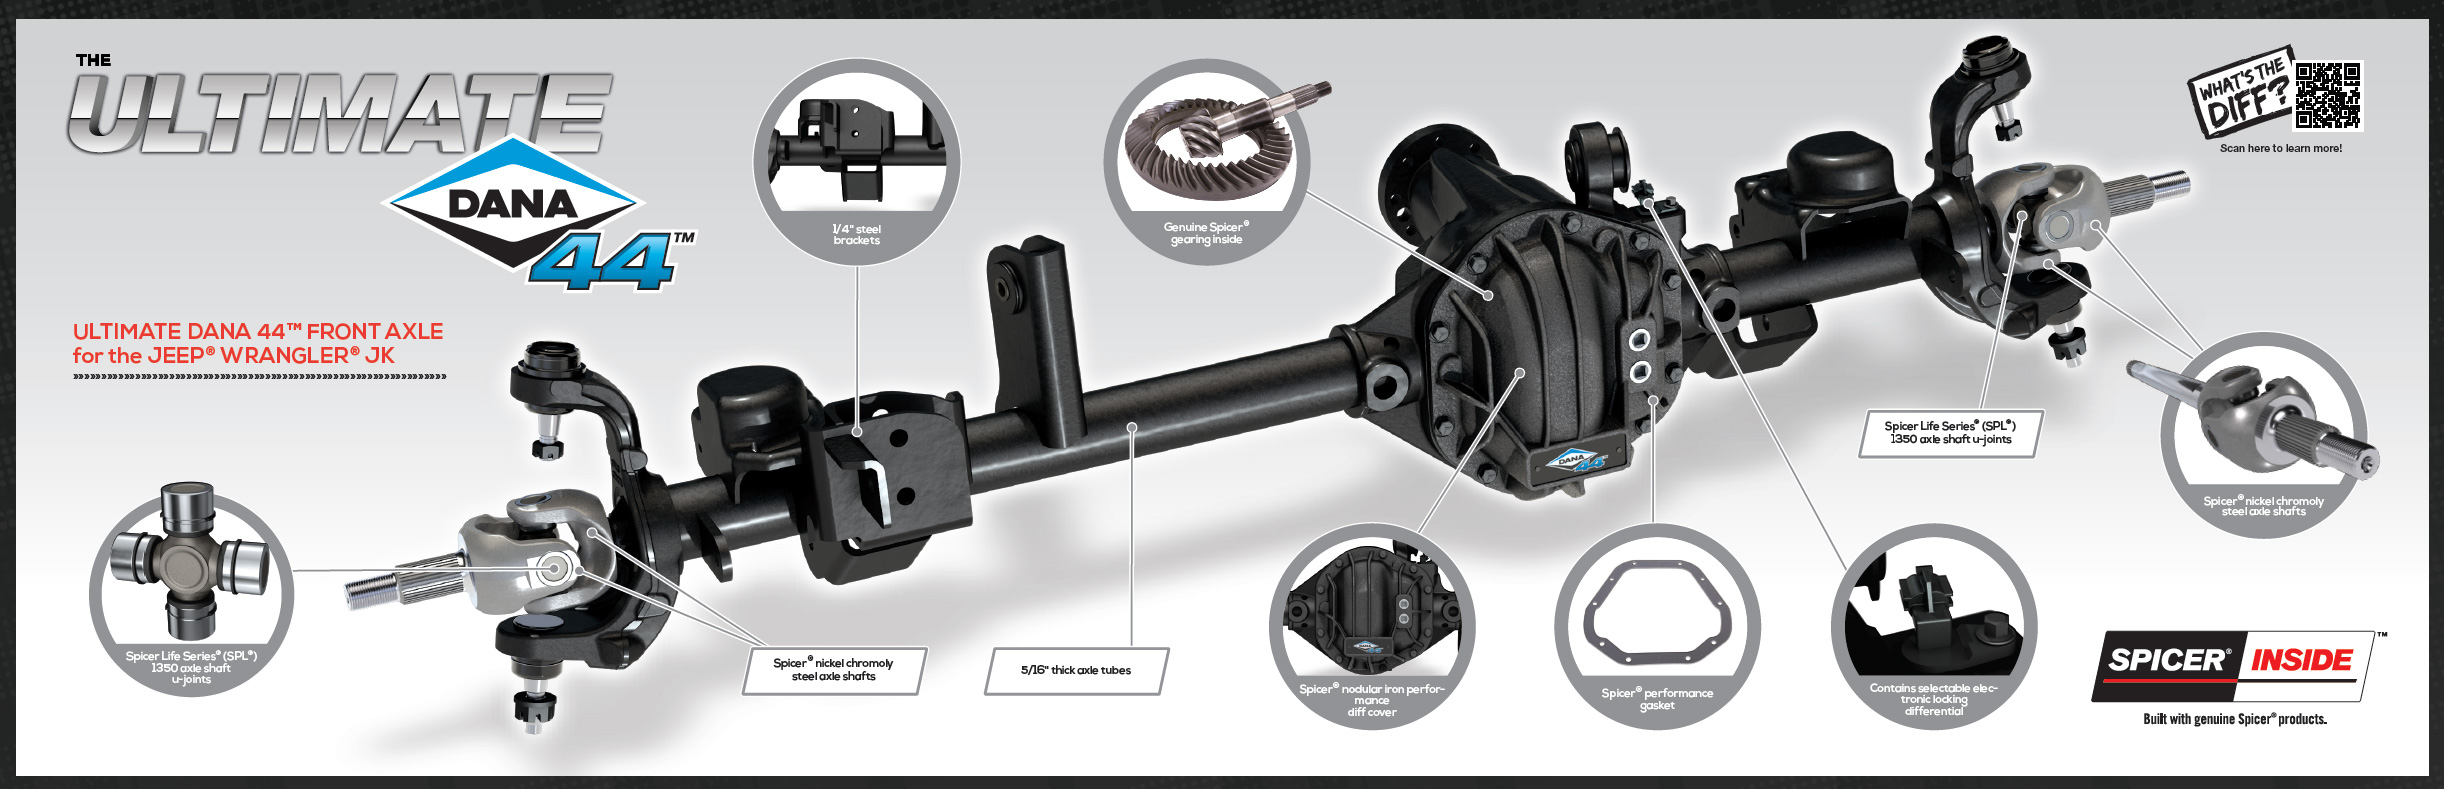 Ultimate Dana 44 Axle Details